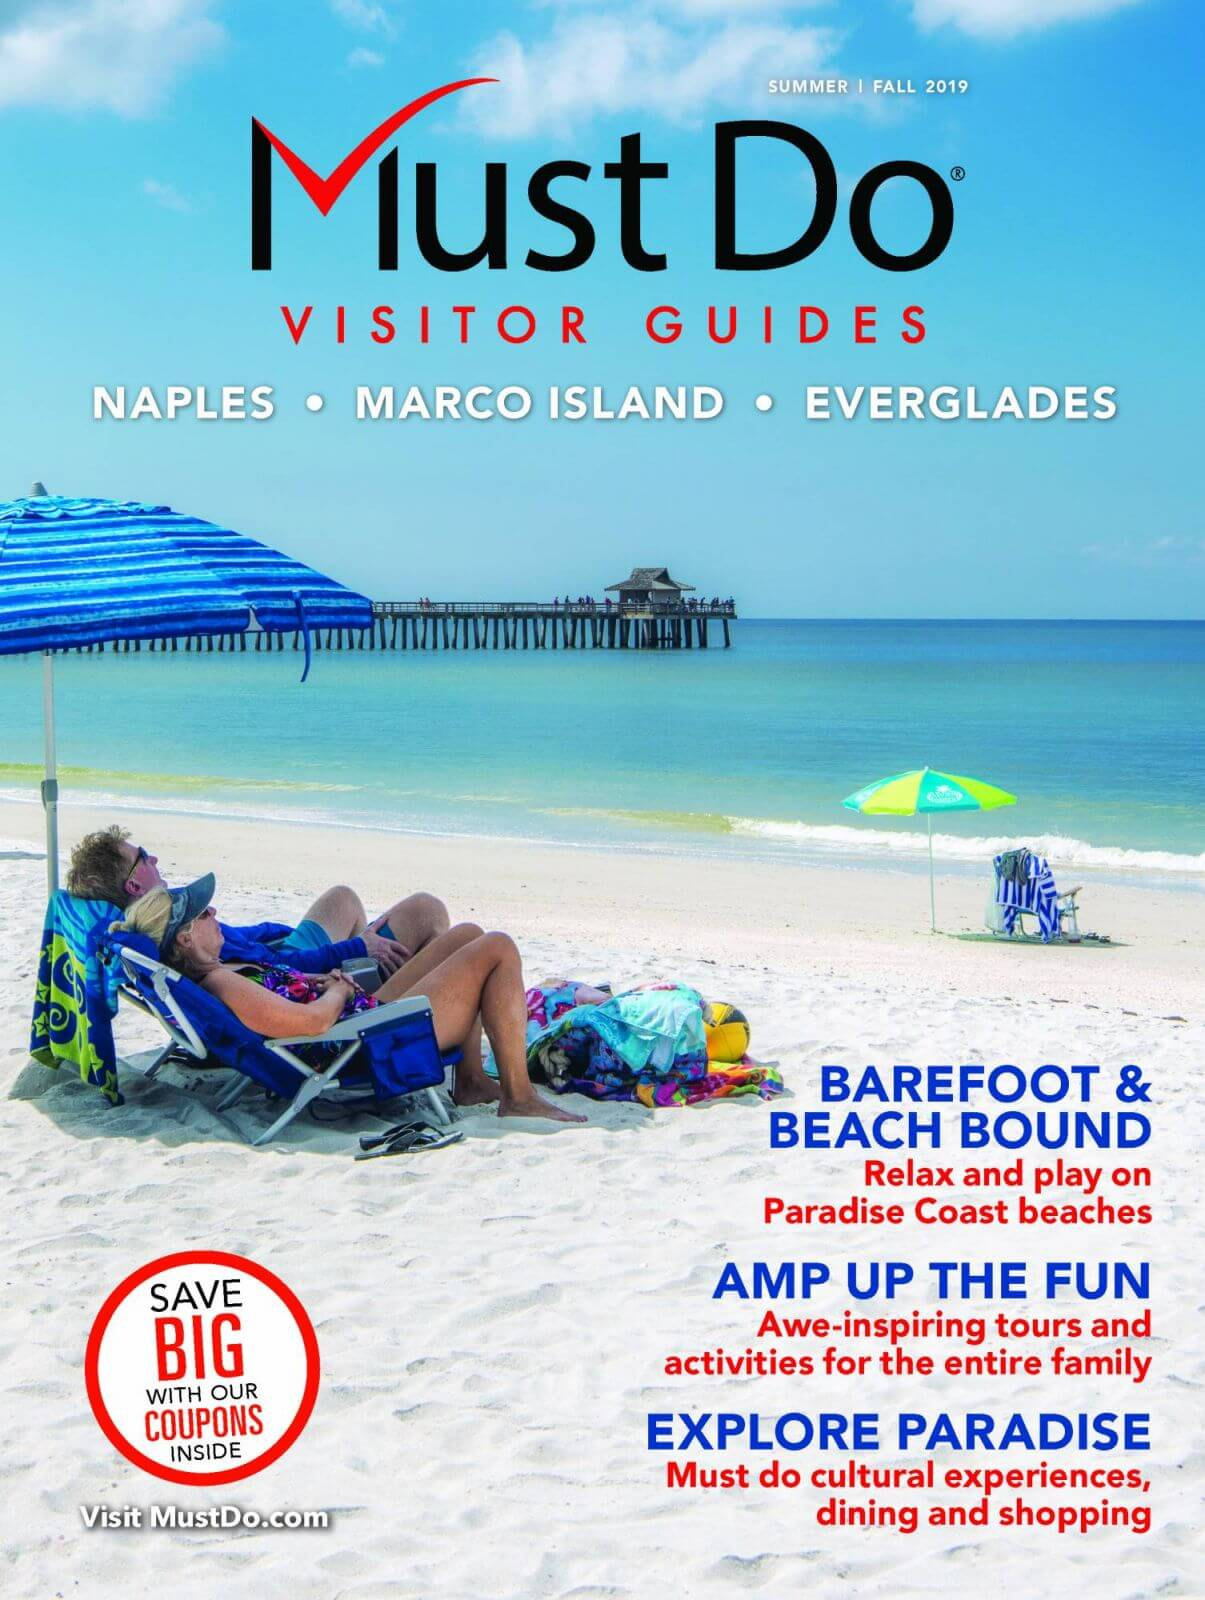 Naples, Marco Island, and Everglades Florida visitor information and things to do on vacation. Read the current issue of Must Do Visitor Guides online at MustDo.com.